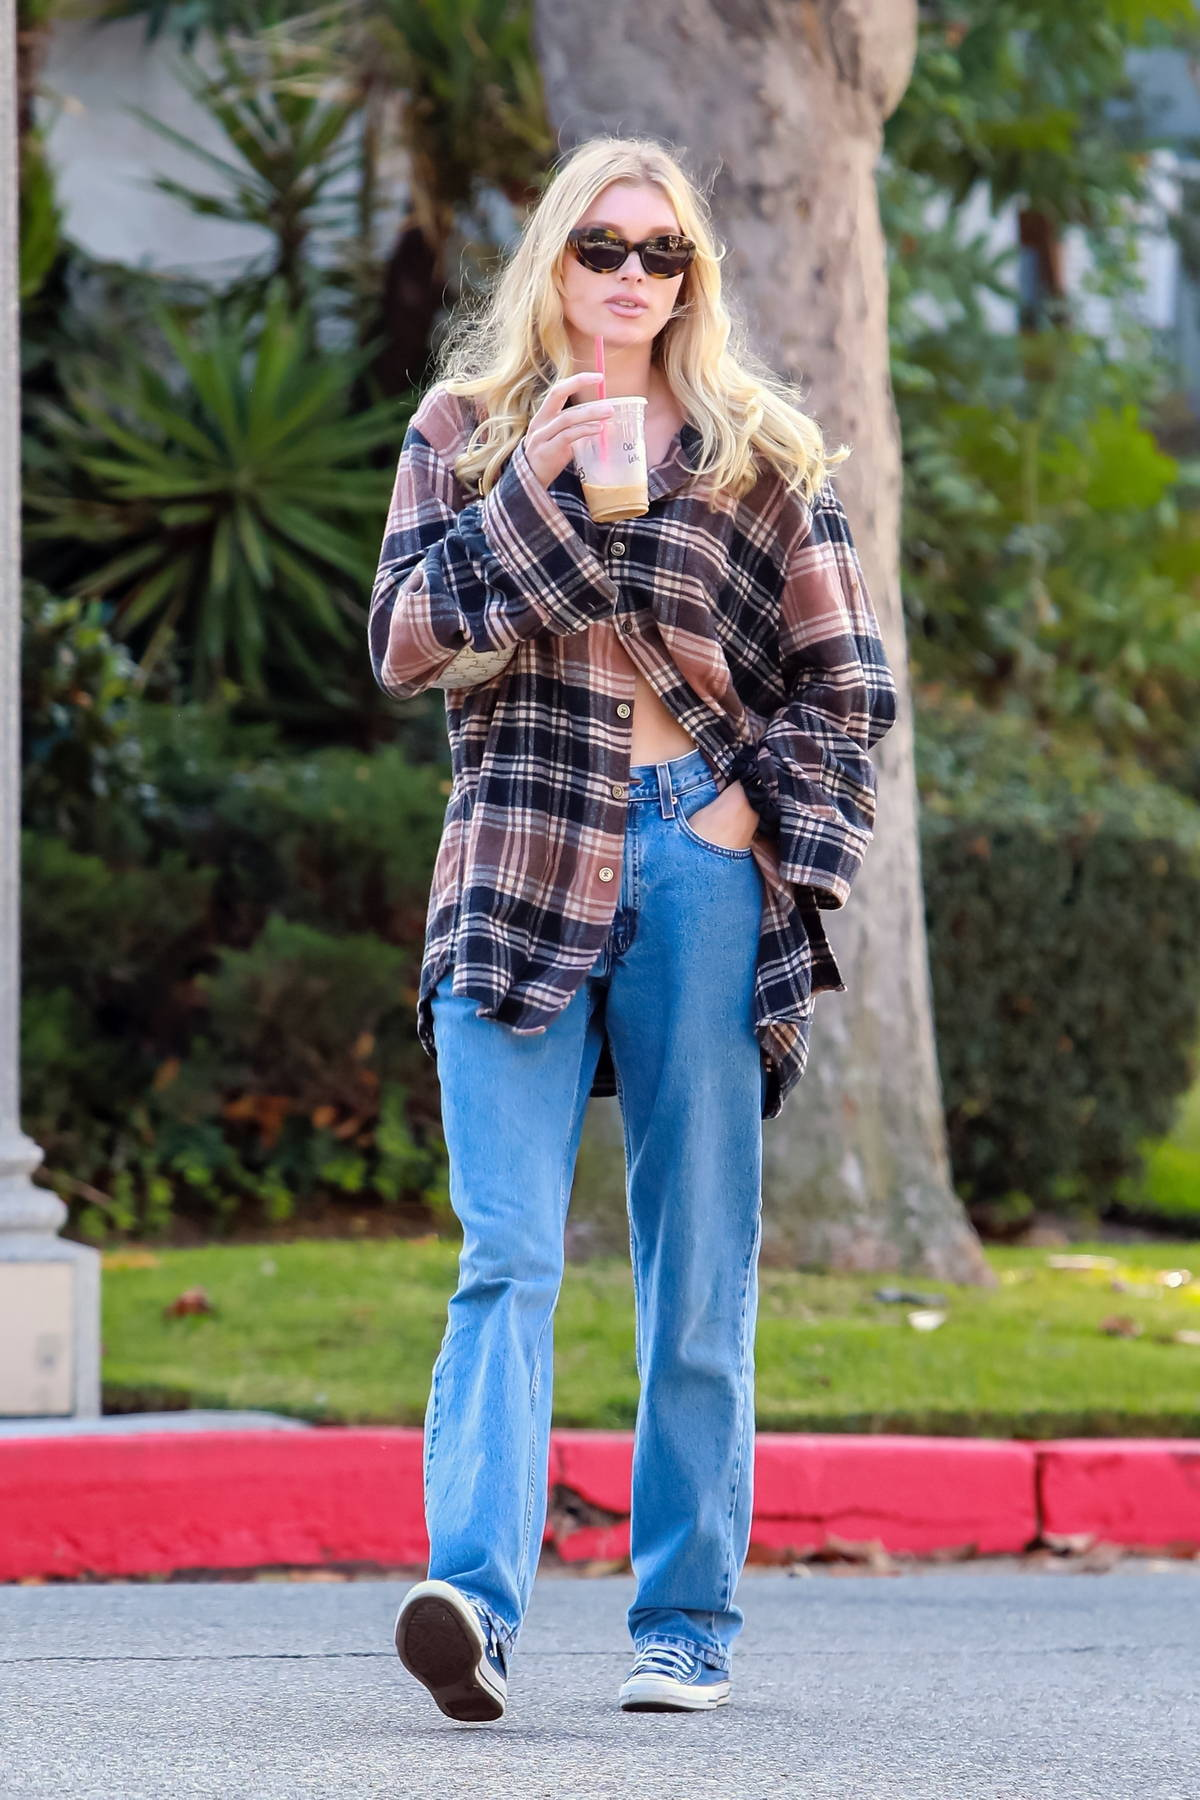 Elsa Hosk stays comfy in an oversized flannel shirt and jeans while out for a stroll in Pasadena, California